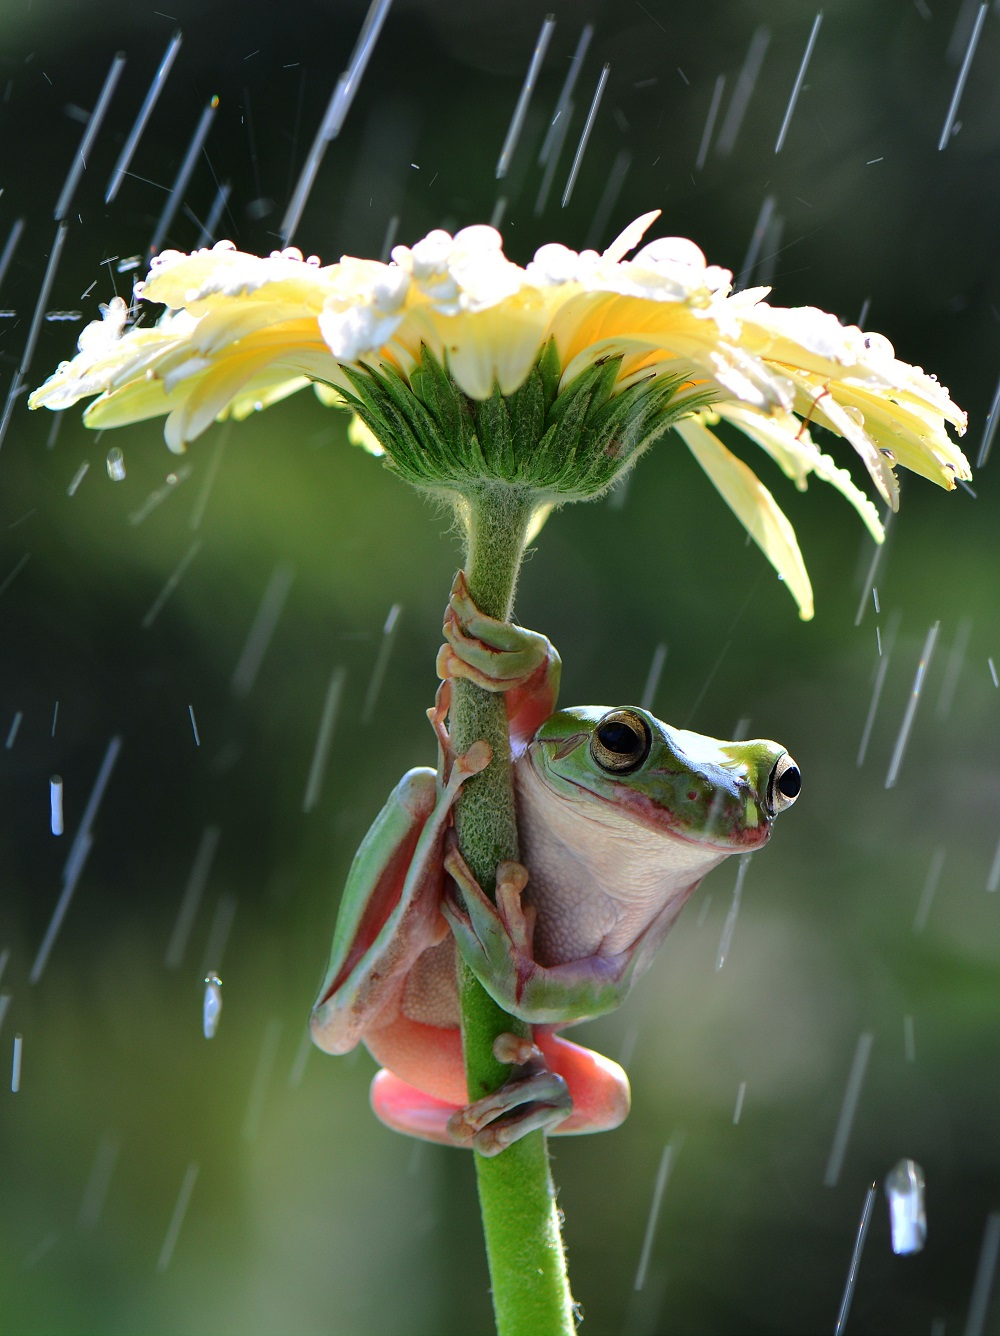 """Mandatory Credit: Photo by Ajar Setiadi/Solent News/REX Shutterstock (4794095a) Frog sheltering from the rain under a flower Frogs shelter under flowers from the rain, Jakarta, Indonesia - May 2015 *Full story: http://www.rexfeatures.com/nanolink/qfrm A pair of quick-thinking frogs try to keep dry while it showers by holding a flower over their head like an umbrella. The amphibians are so determined to keep dry they manage to climb up the gerbera stalks so their bodies are underneath the petals. Photographer Ajar Setiadi captured the moment two dumpy tree frogs climbed the flowers in his back garden in Jakarta, Indonesia. The 47-year-old said: """"I was playing with my frogs at the time and then it started showering quite a bit. """"The frogs managed to jump from one flower to another and hold it above their heads so that they did not get wet""""."""